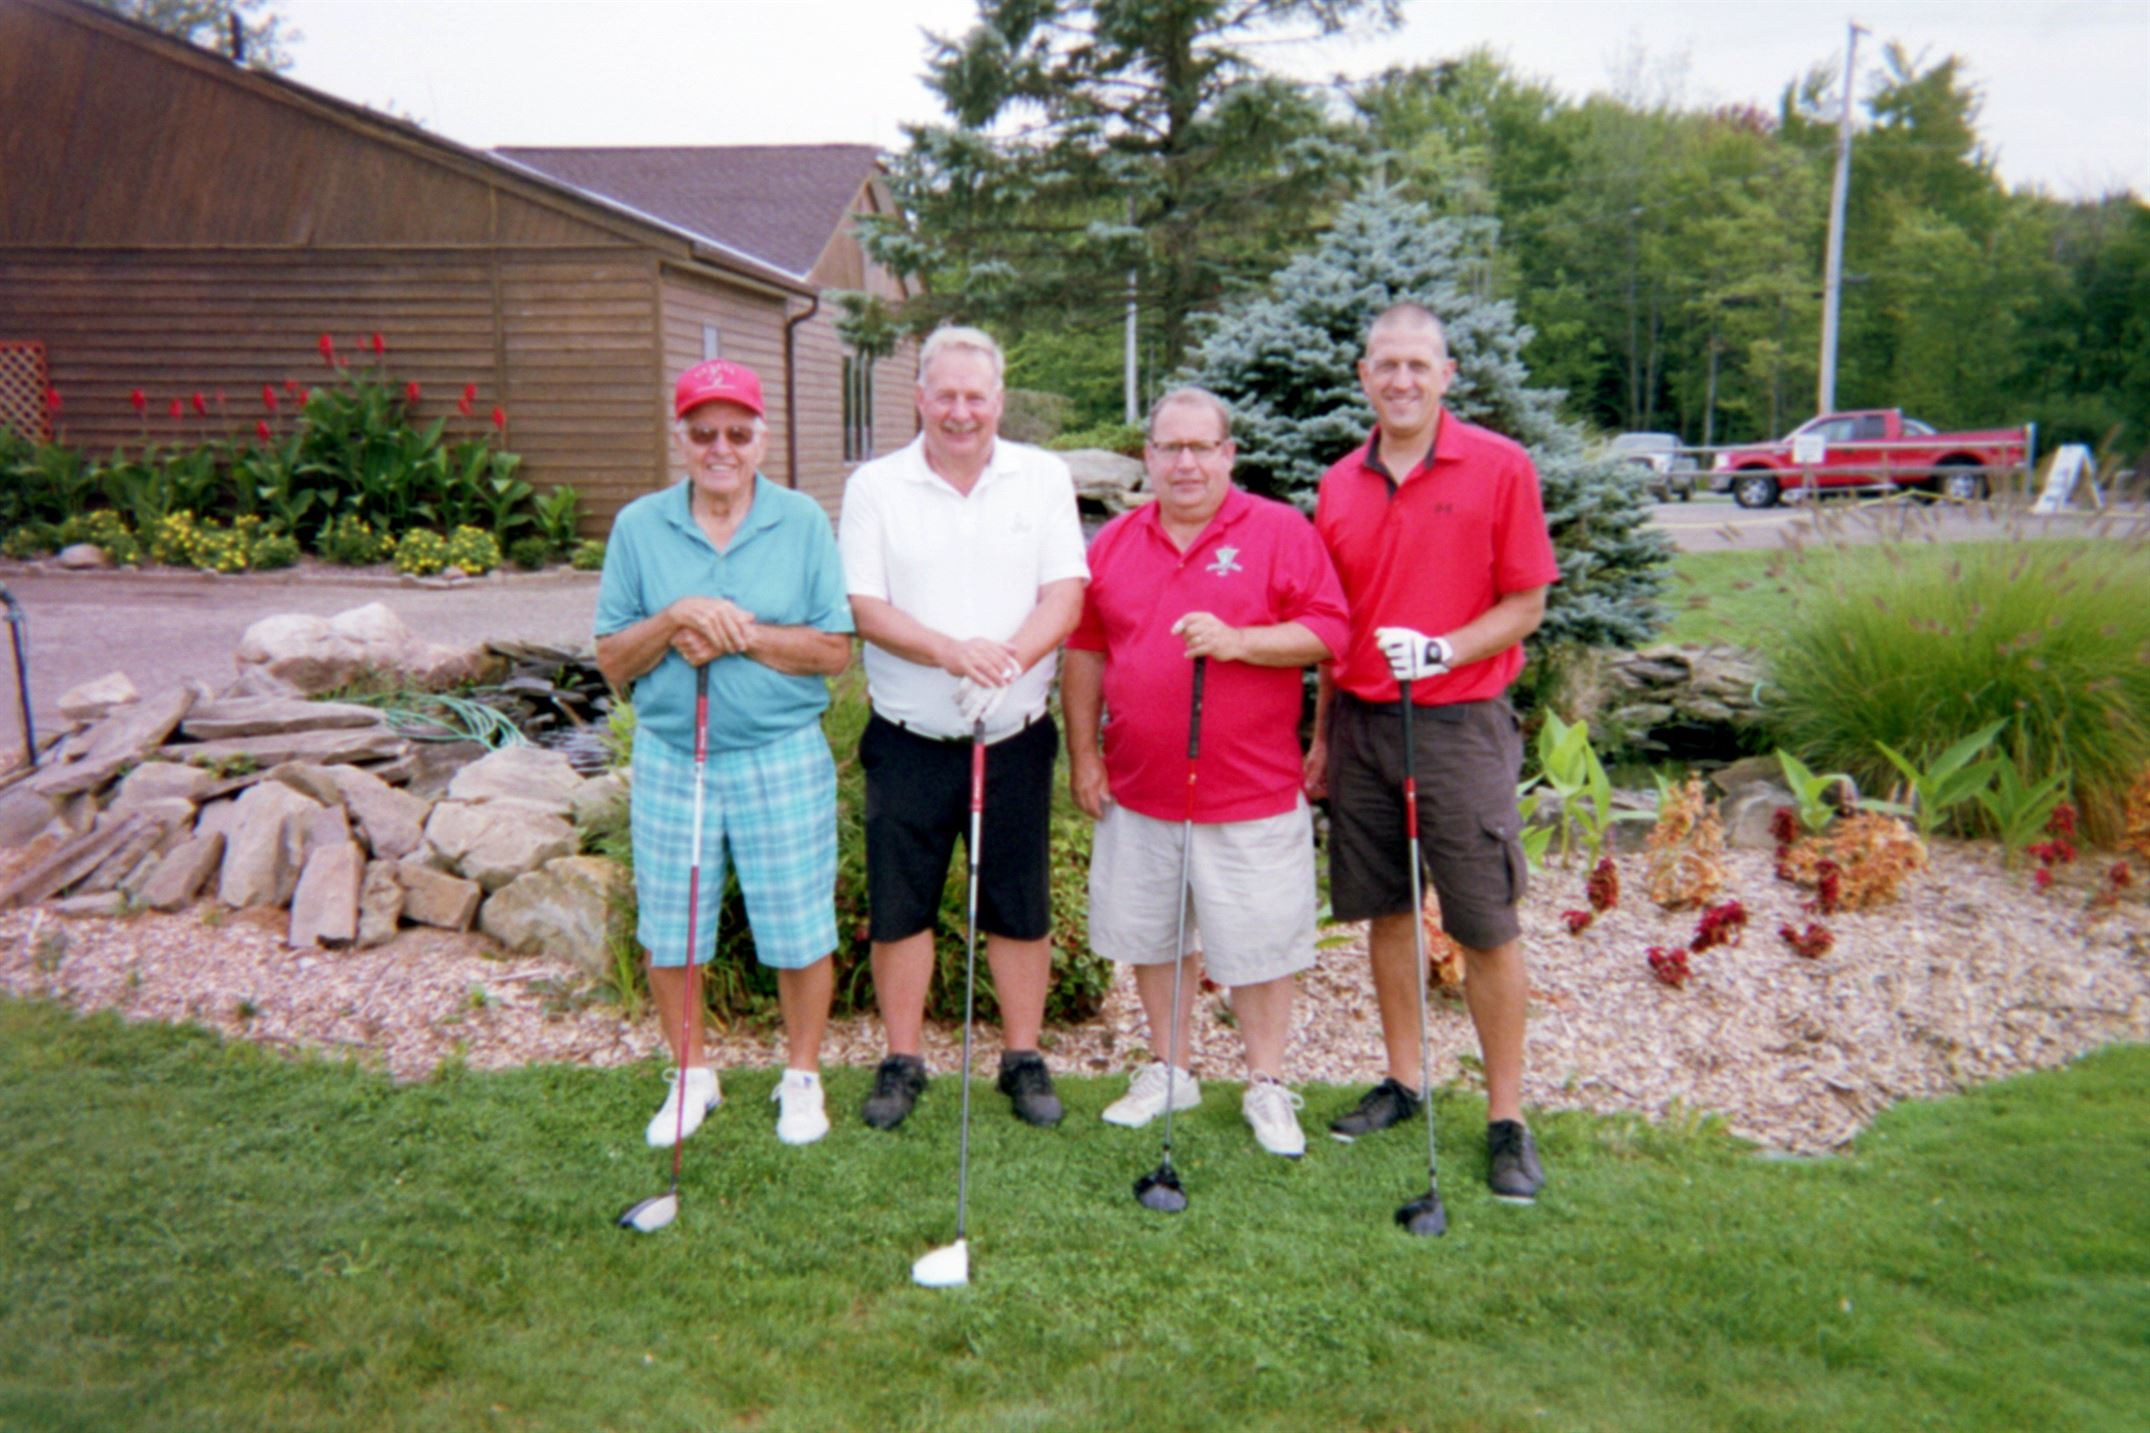 Russ Starkey, Jeff Starkey, Doug Starkey, Dale Arkenburg